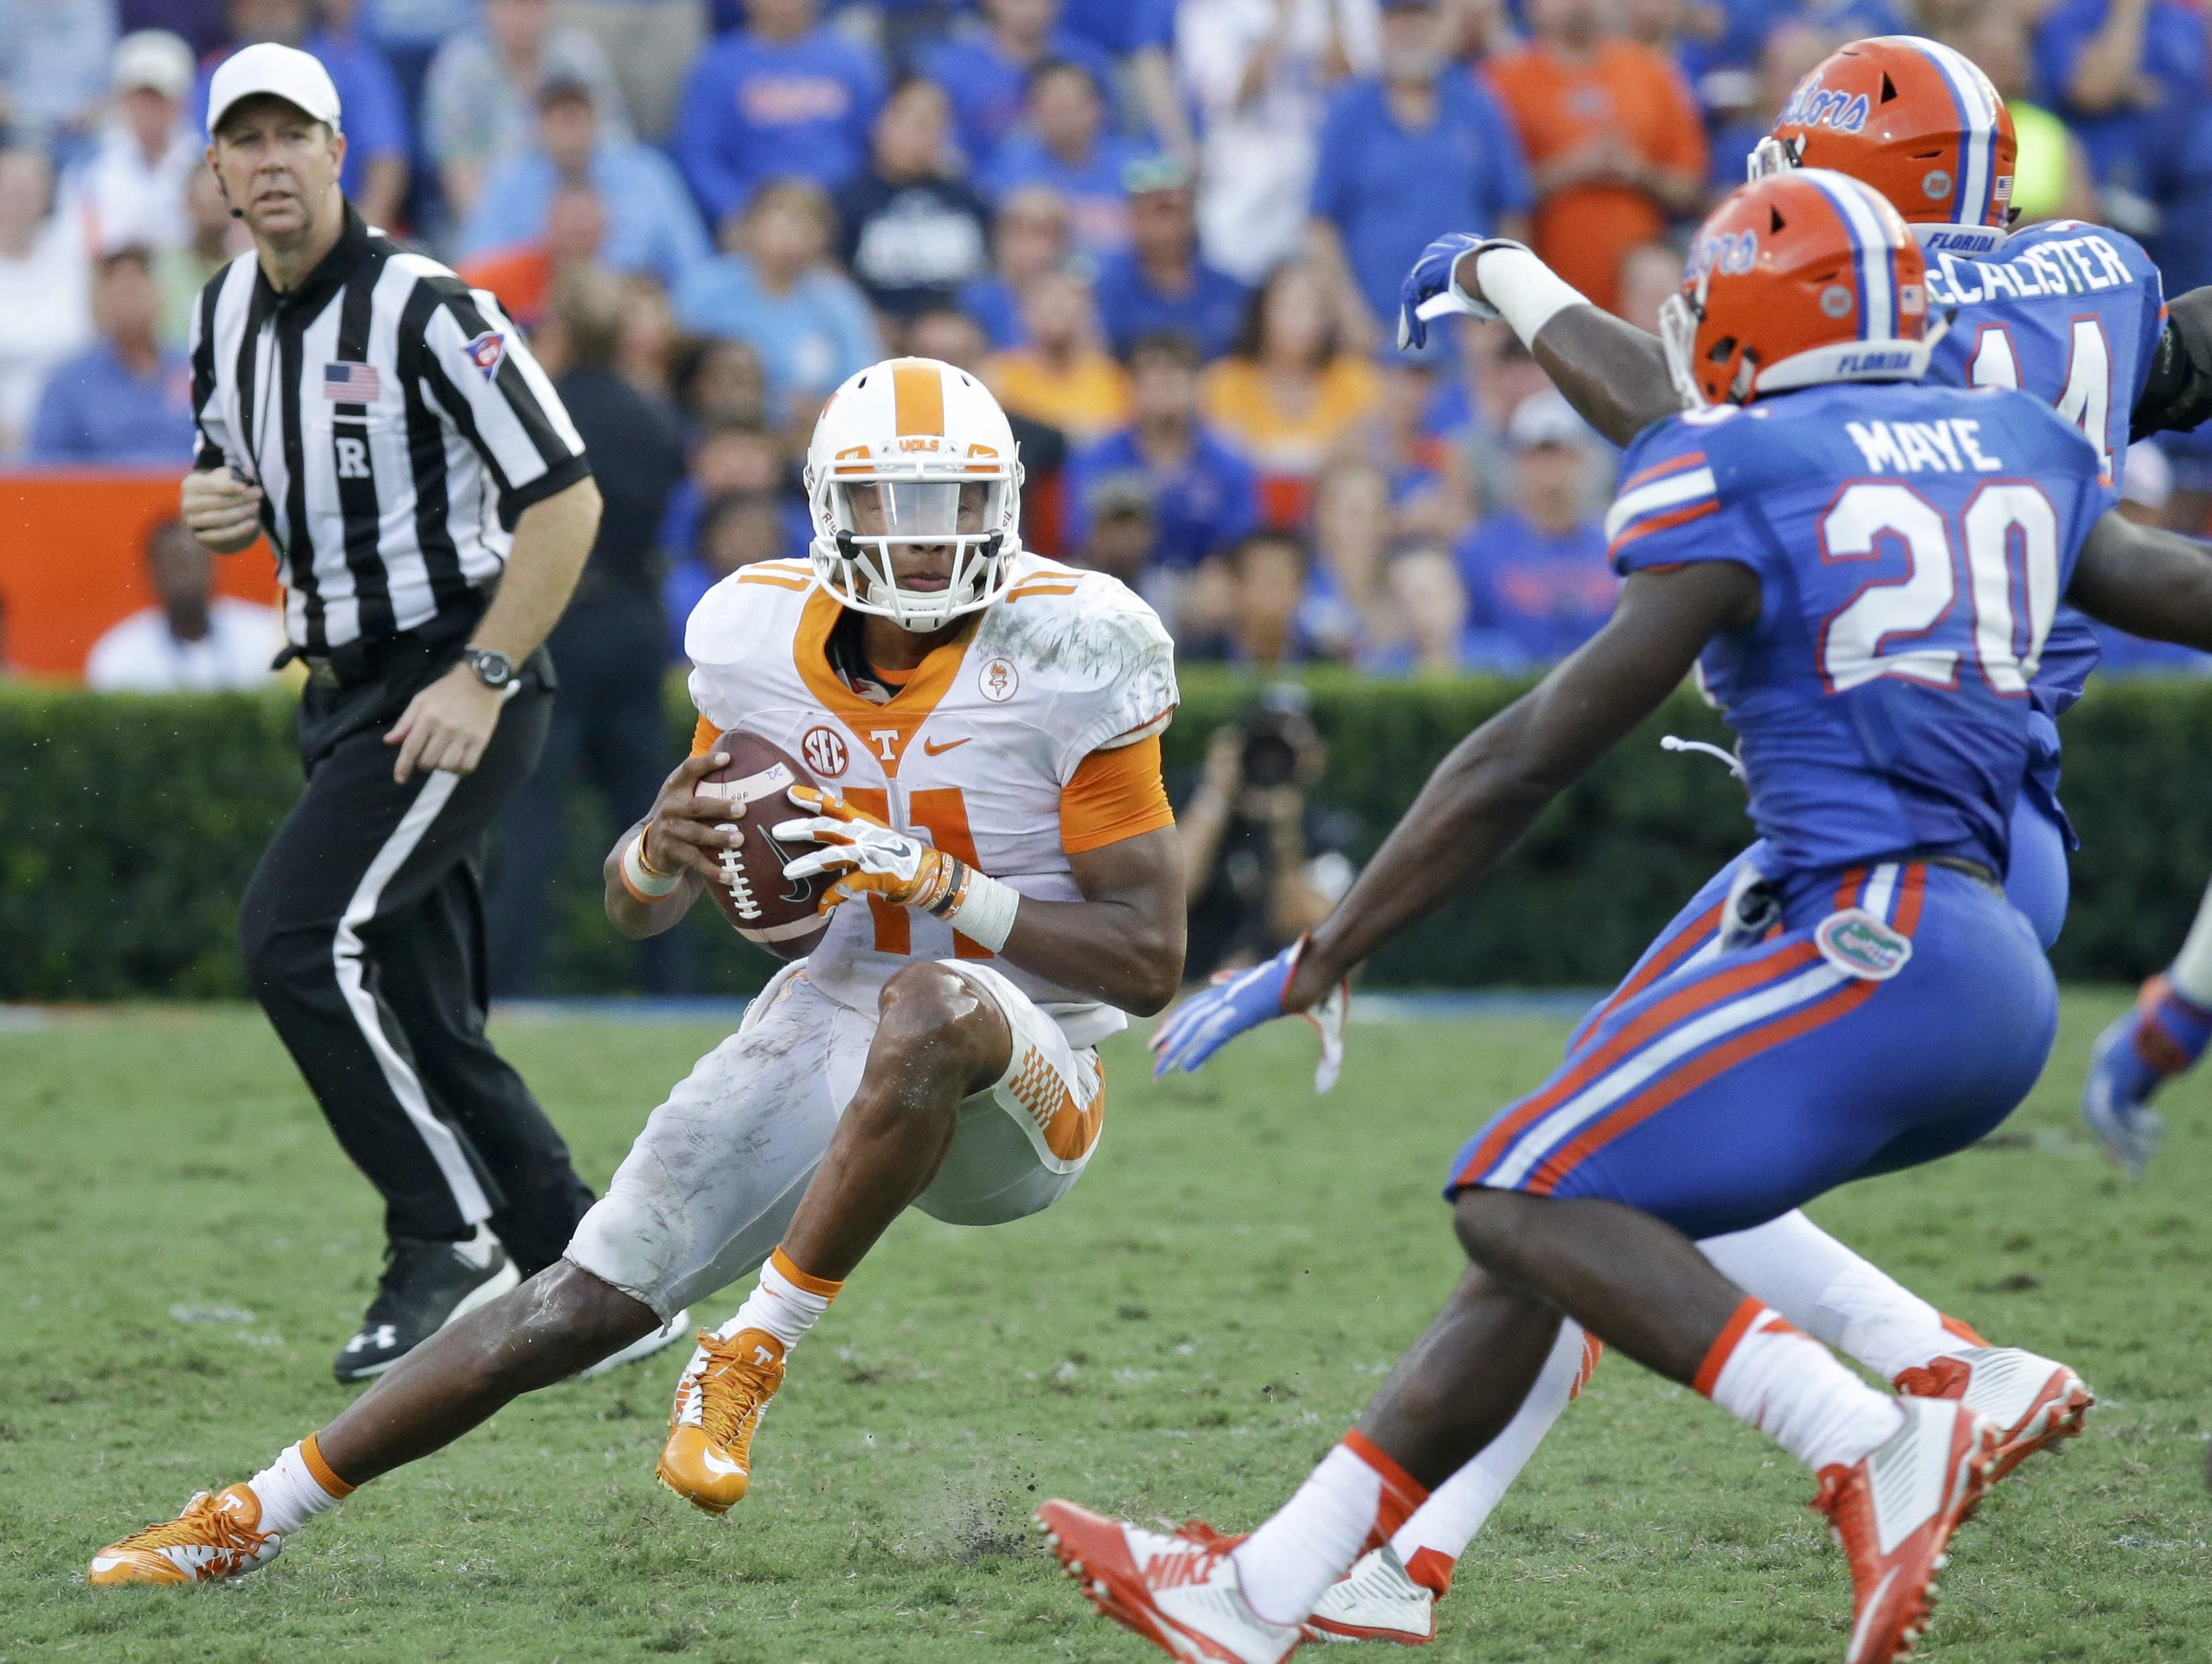 Tennessee quarterback Joshua Dobbs (11) tries to reverse his run as he is pressured by Florida defensive back Marcus Maye (20) and defensive lineman Alex McCalister (14) during the second half Saturday in Gainesville, Fla.